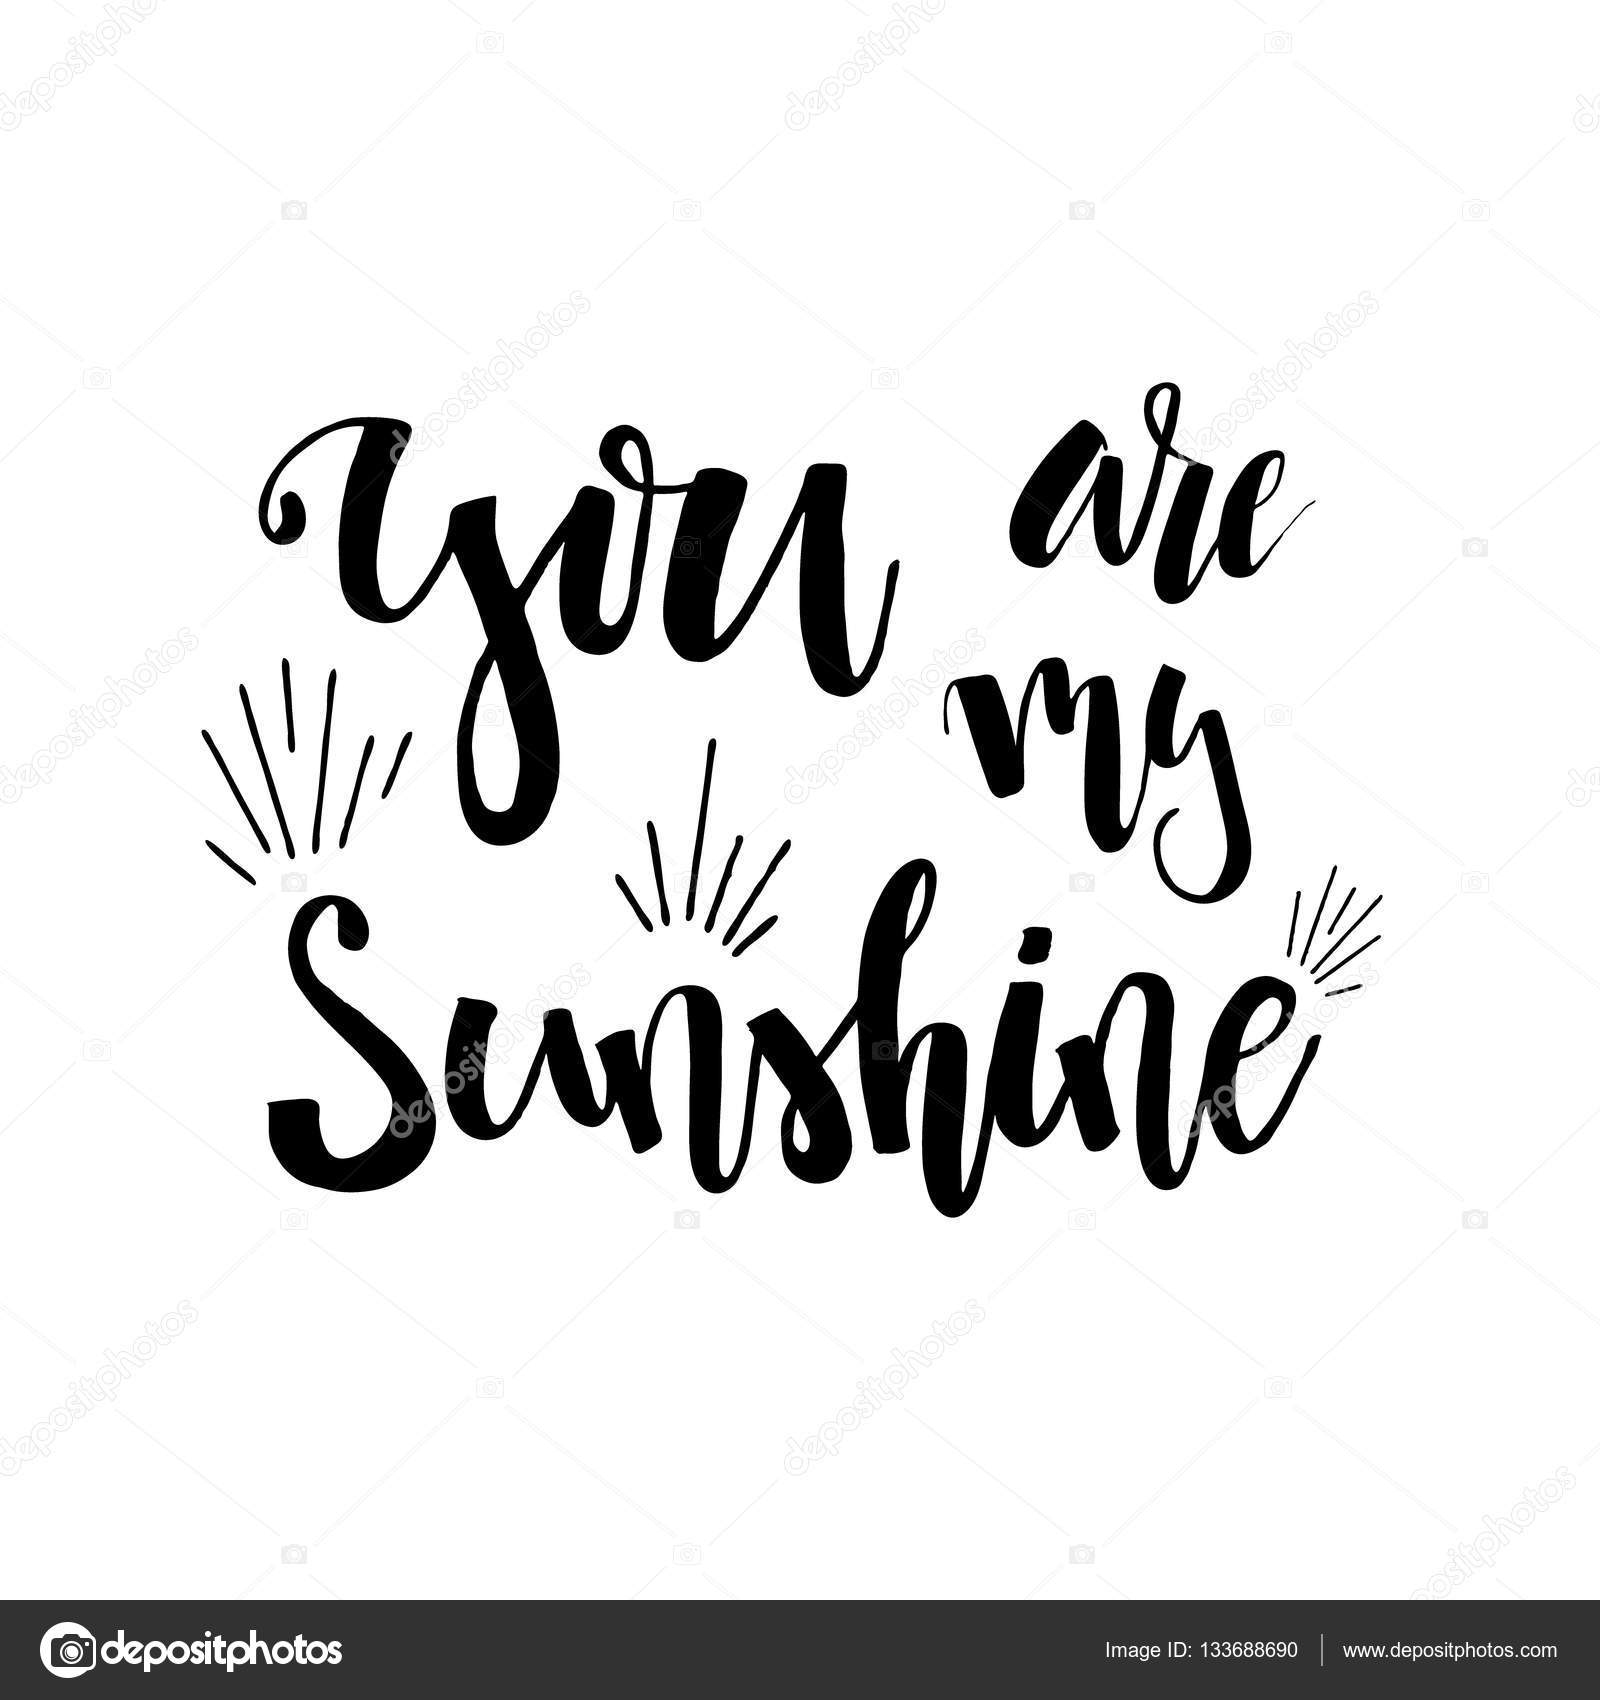 You are my Sunshine Hand drawn Romantic lettering Quote with